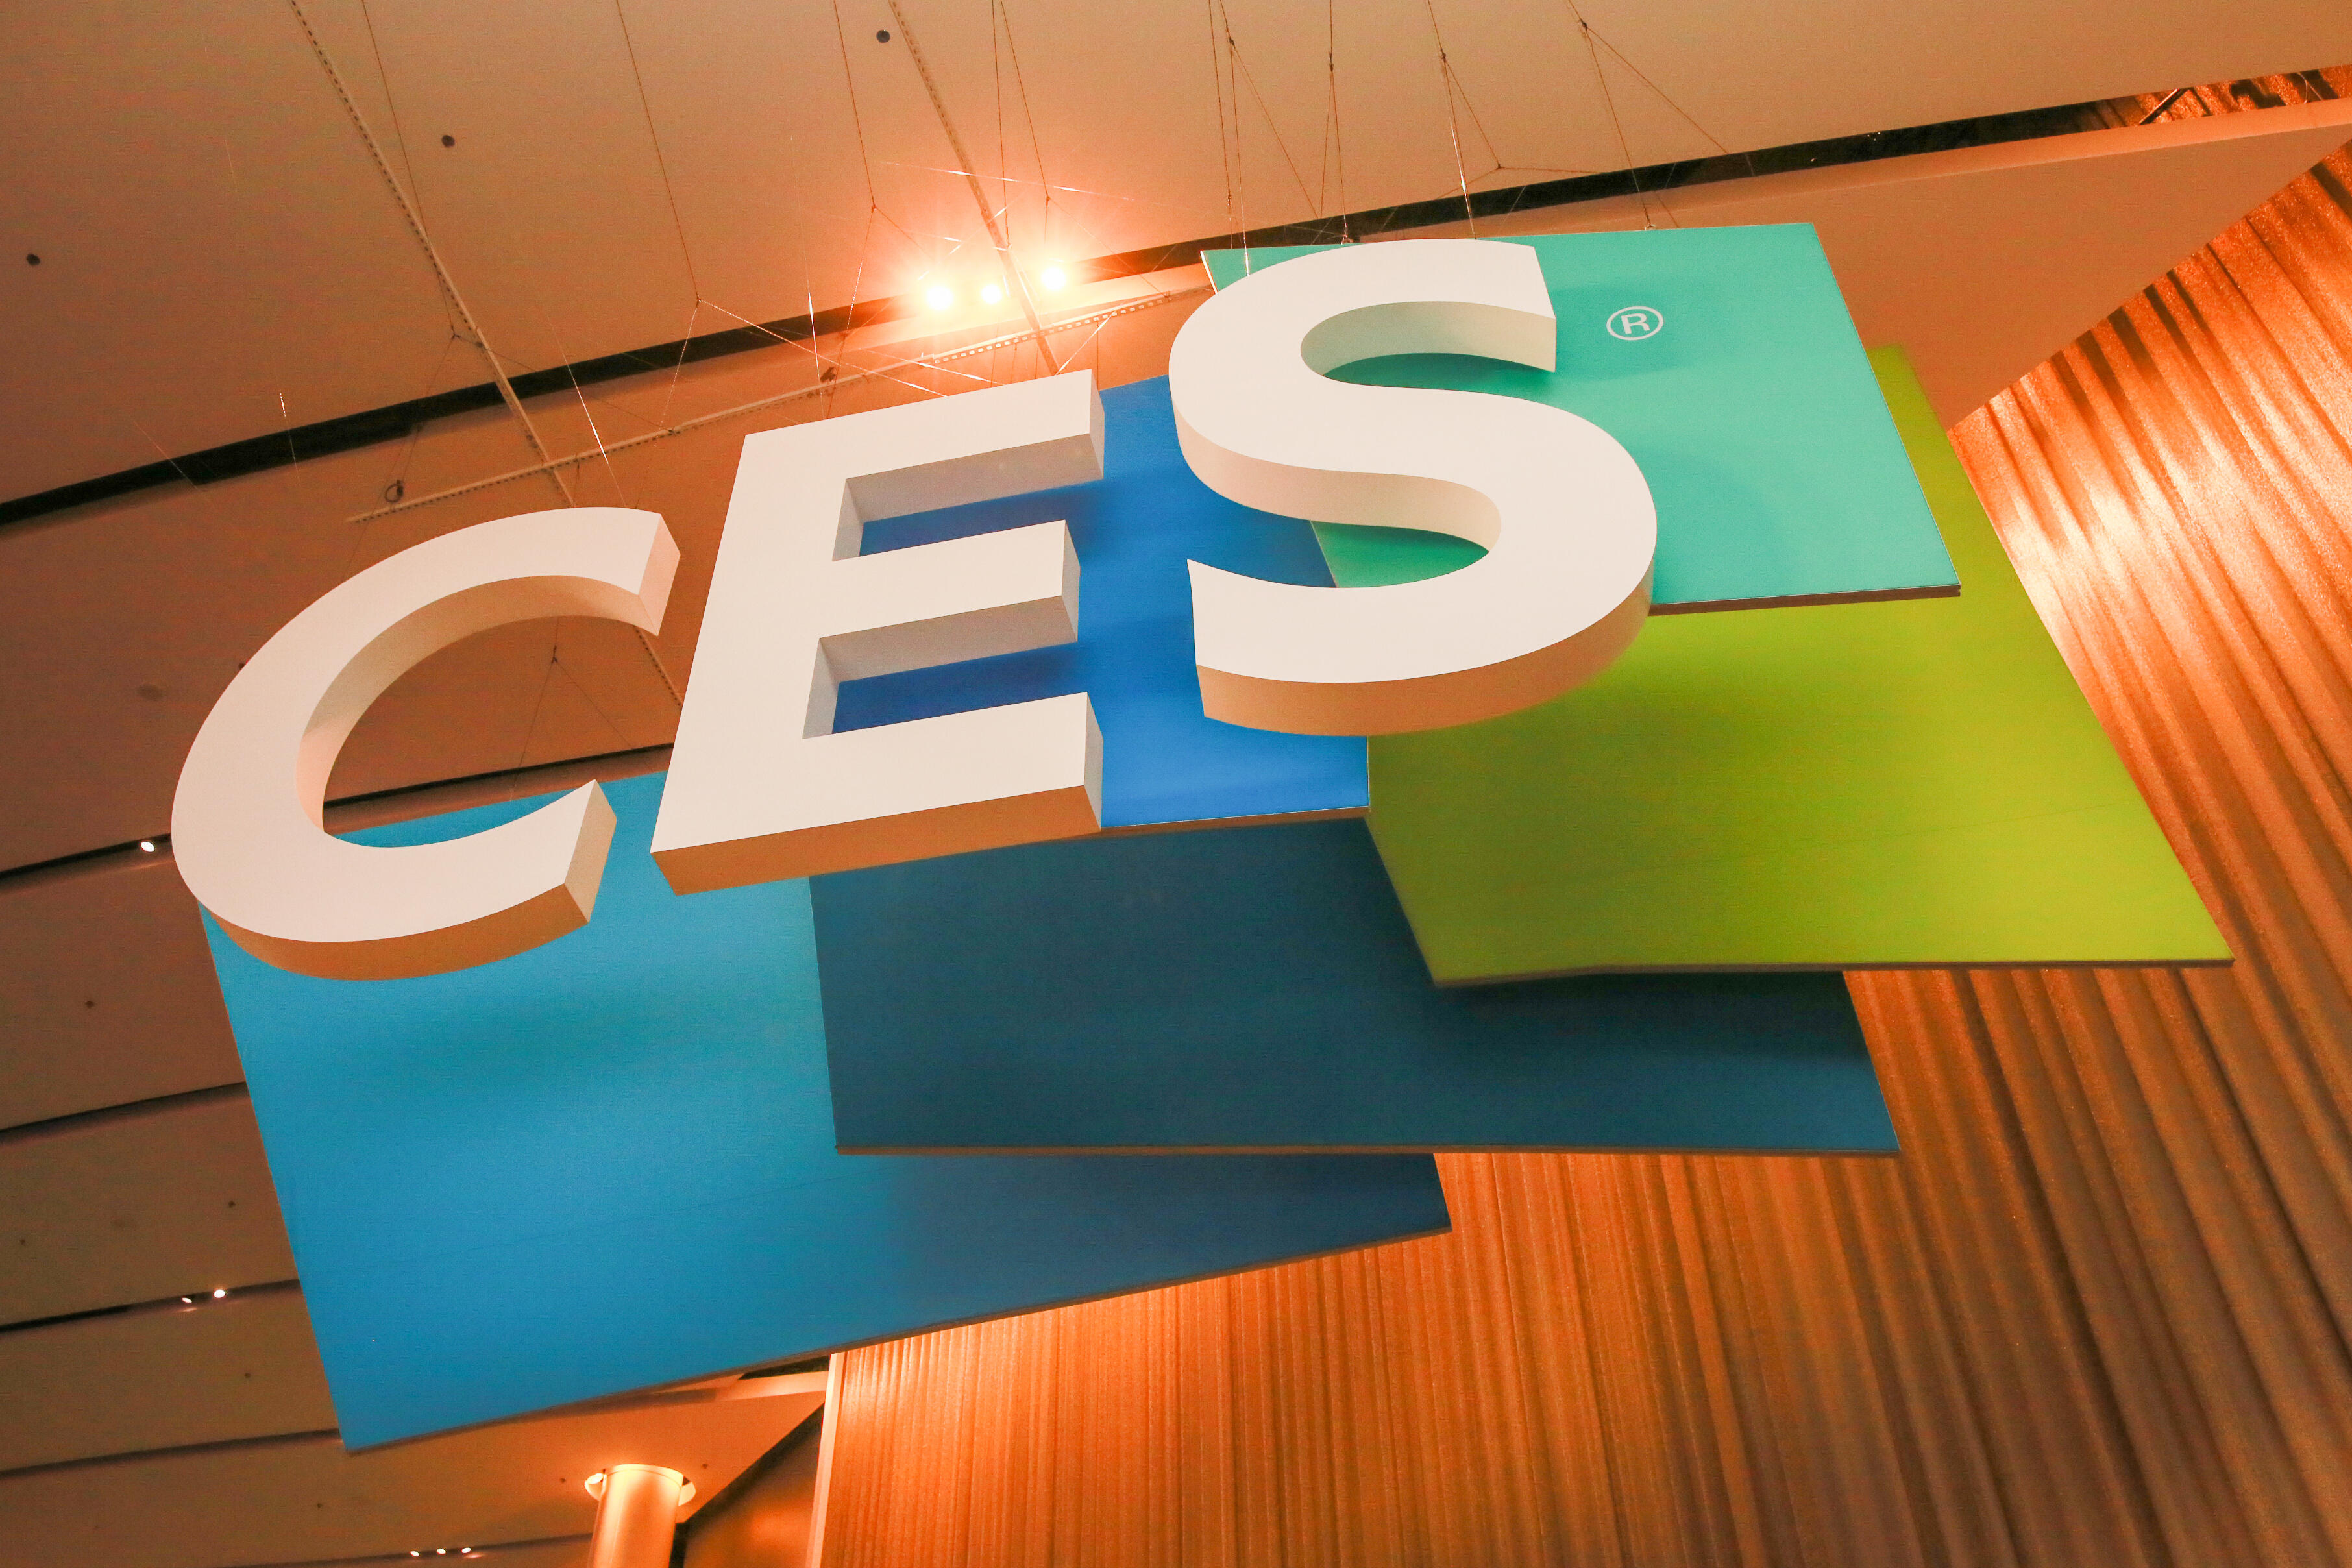 , CES 2022 will return to Las Vegas in person – Source CNET Tech, iBSC Technologies - learning management services, LMS, Wordpress, CMS, Moodle, IT, Email, Web Hosting, Cloud Server,Cloud Computing